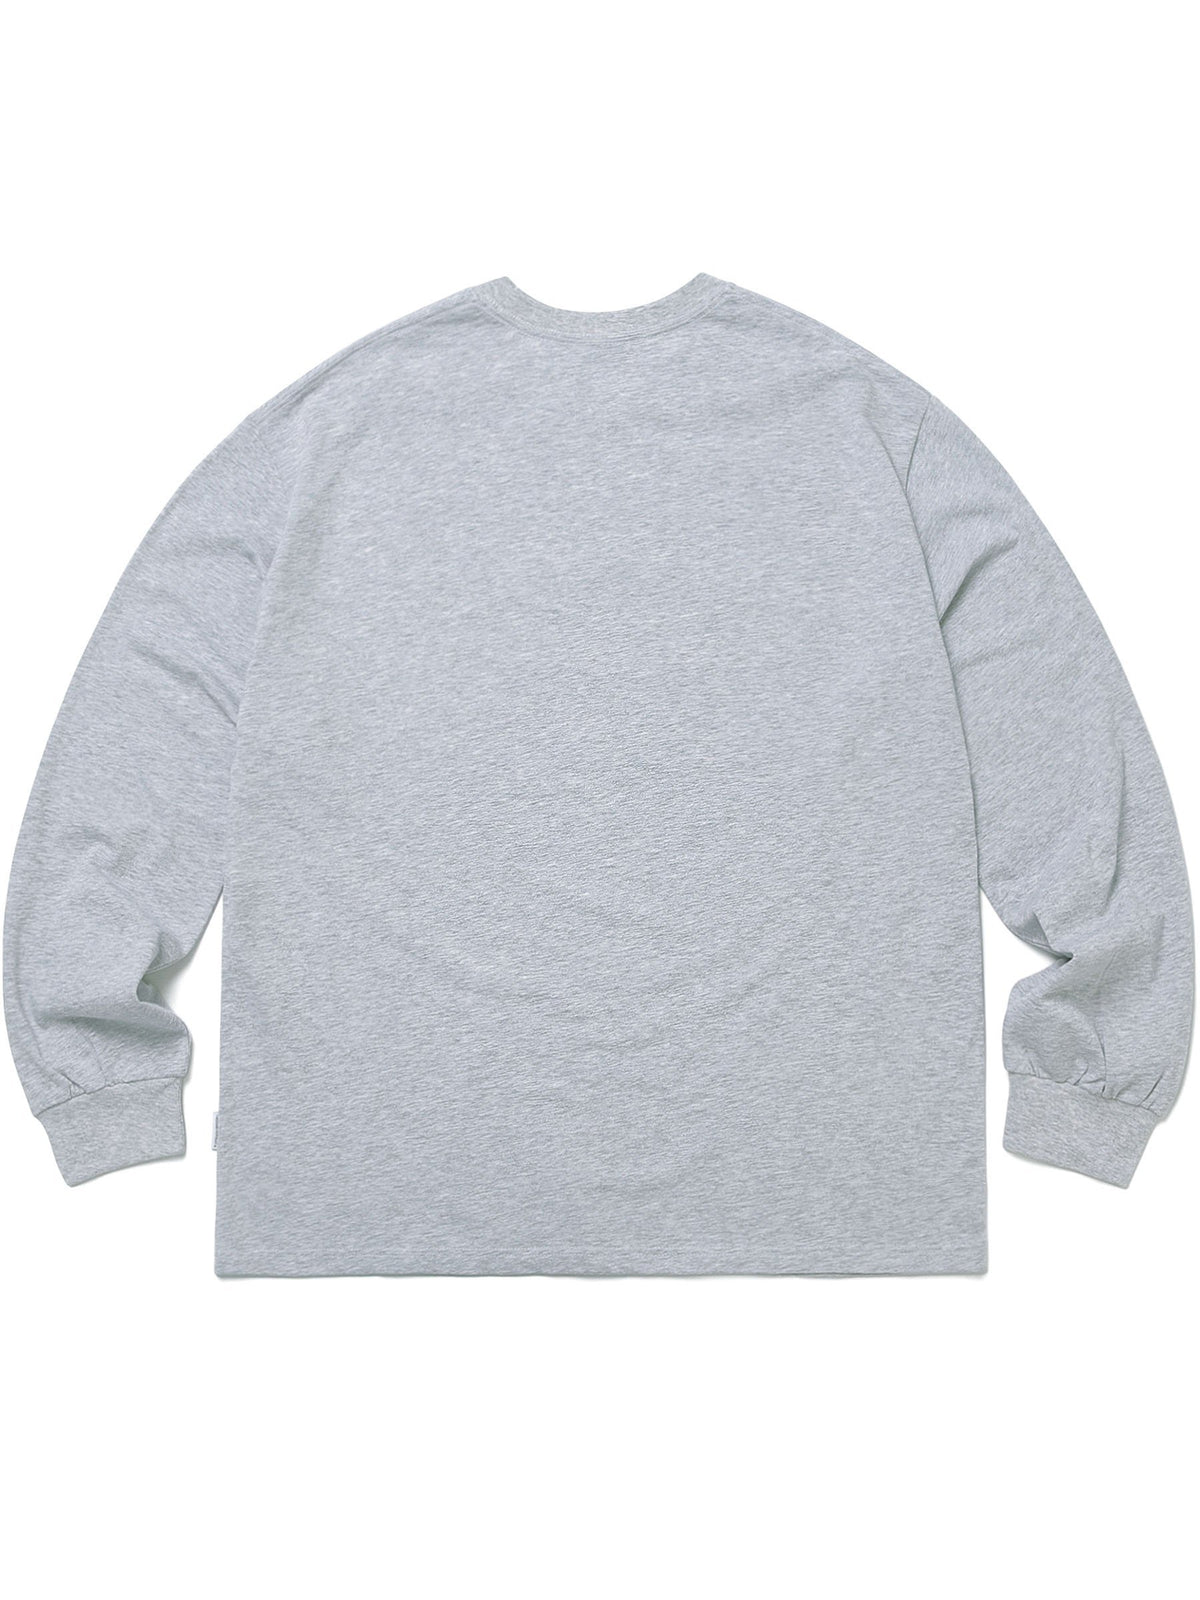 INTL. ARC Logo L/SL Top L/SL T-Shirt